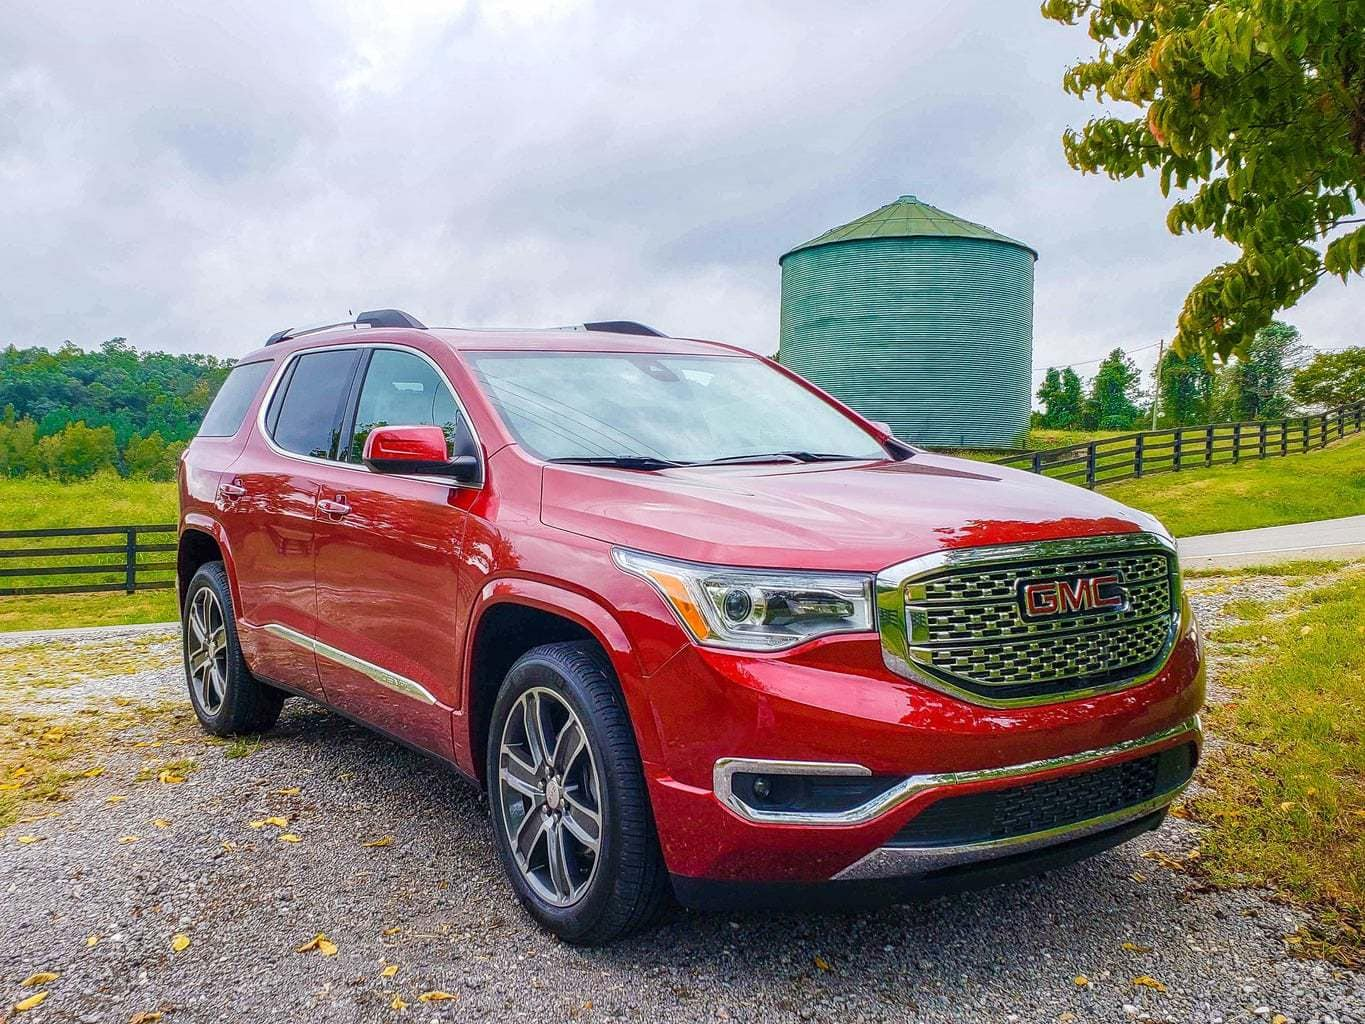 With Summer coming to an end, that also means that the daylight hours will be shorter. Here are some Fall Safety Driving Tips that everyone should know. #GMCAcadiaDenali #FallDrivingTips